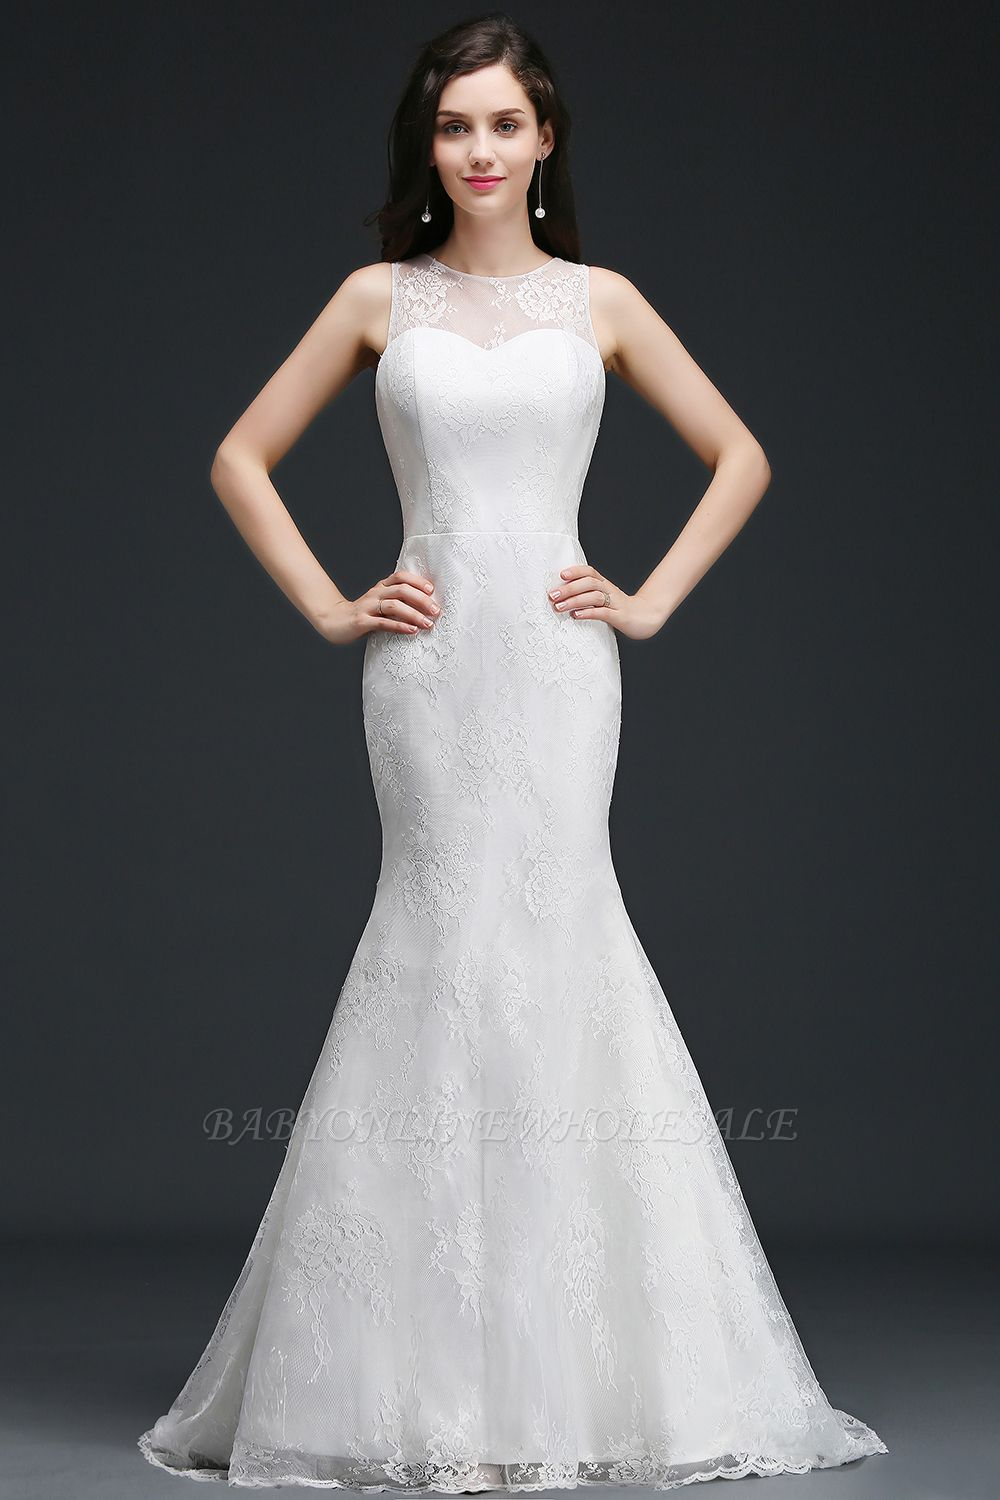 AMELIA   Mermaid Sweep Train Lace New Arrival Wedding Dresses with Buttons